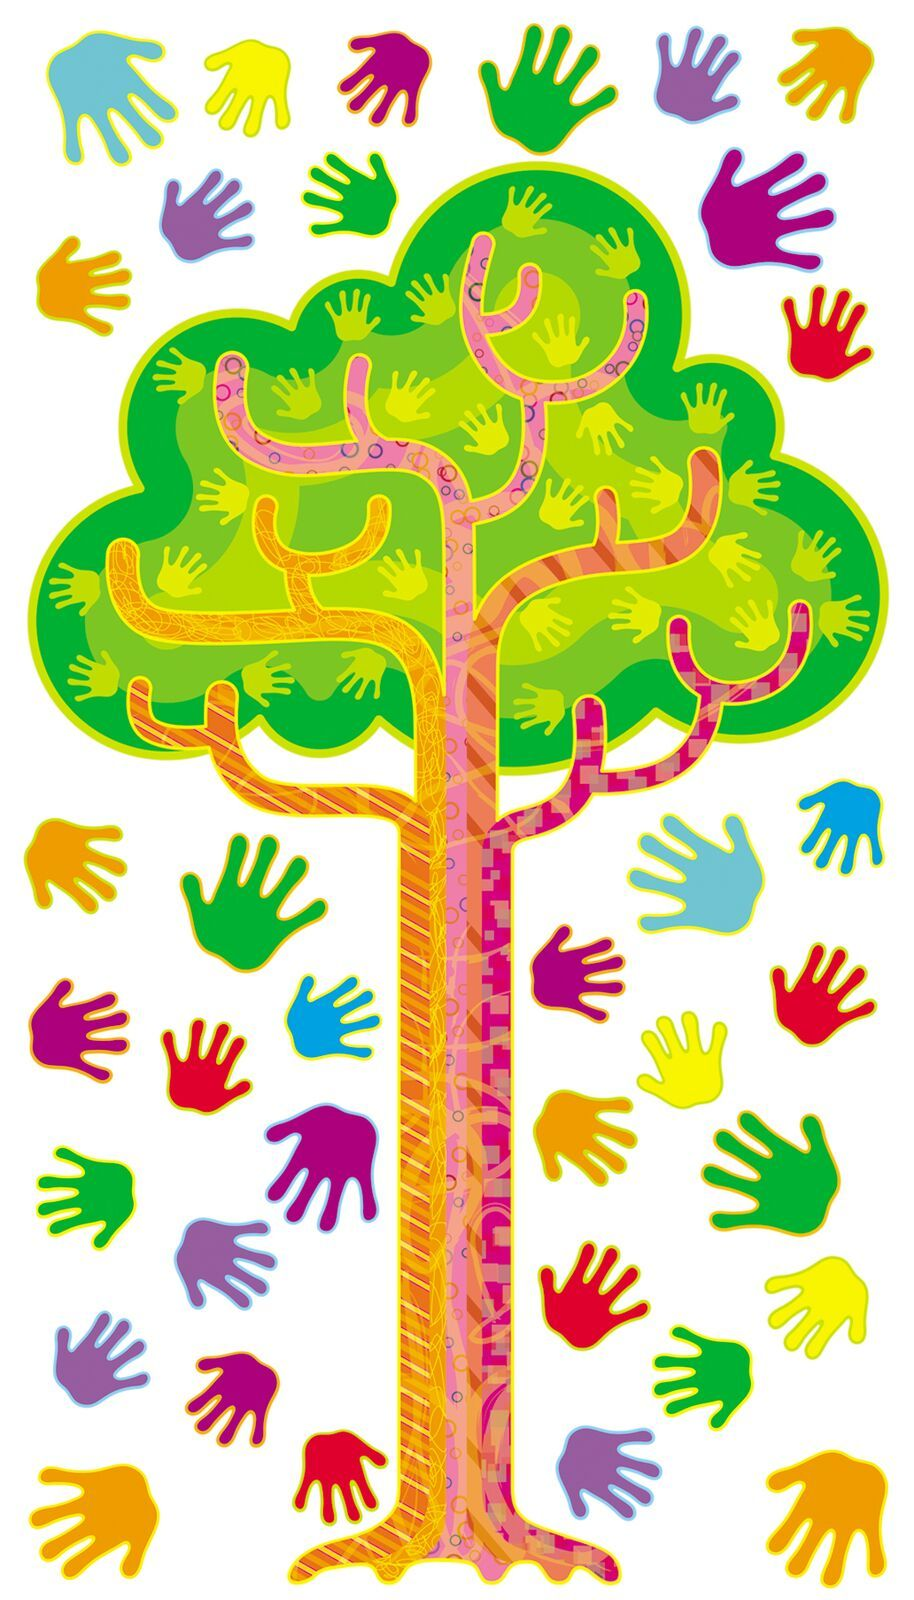 Hands in Harmony Learning Tree Bulletin Set - 1.2m - Pack of 52 pieces